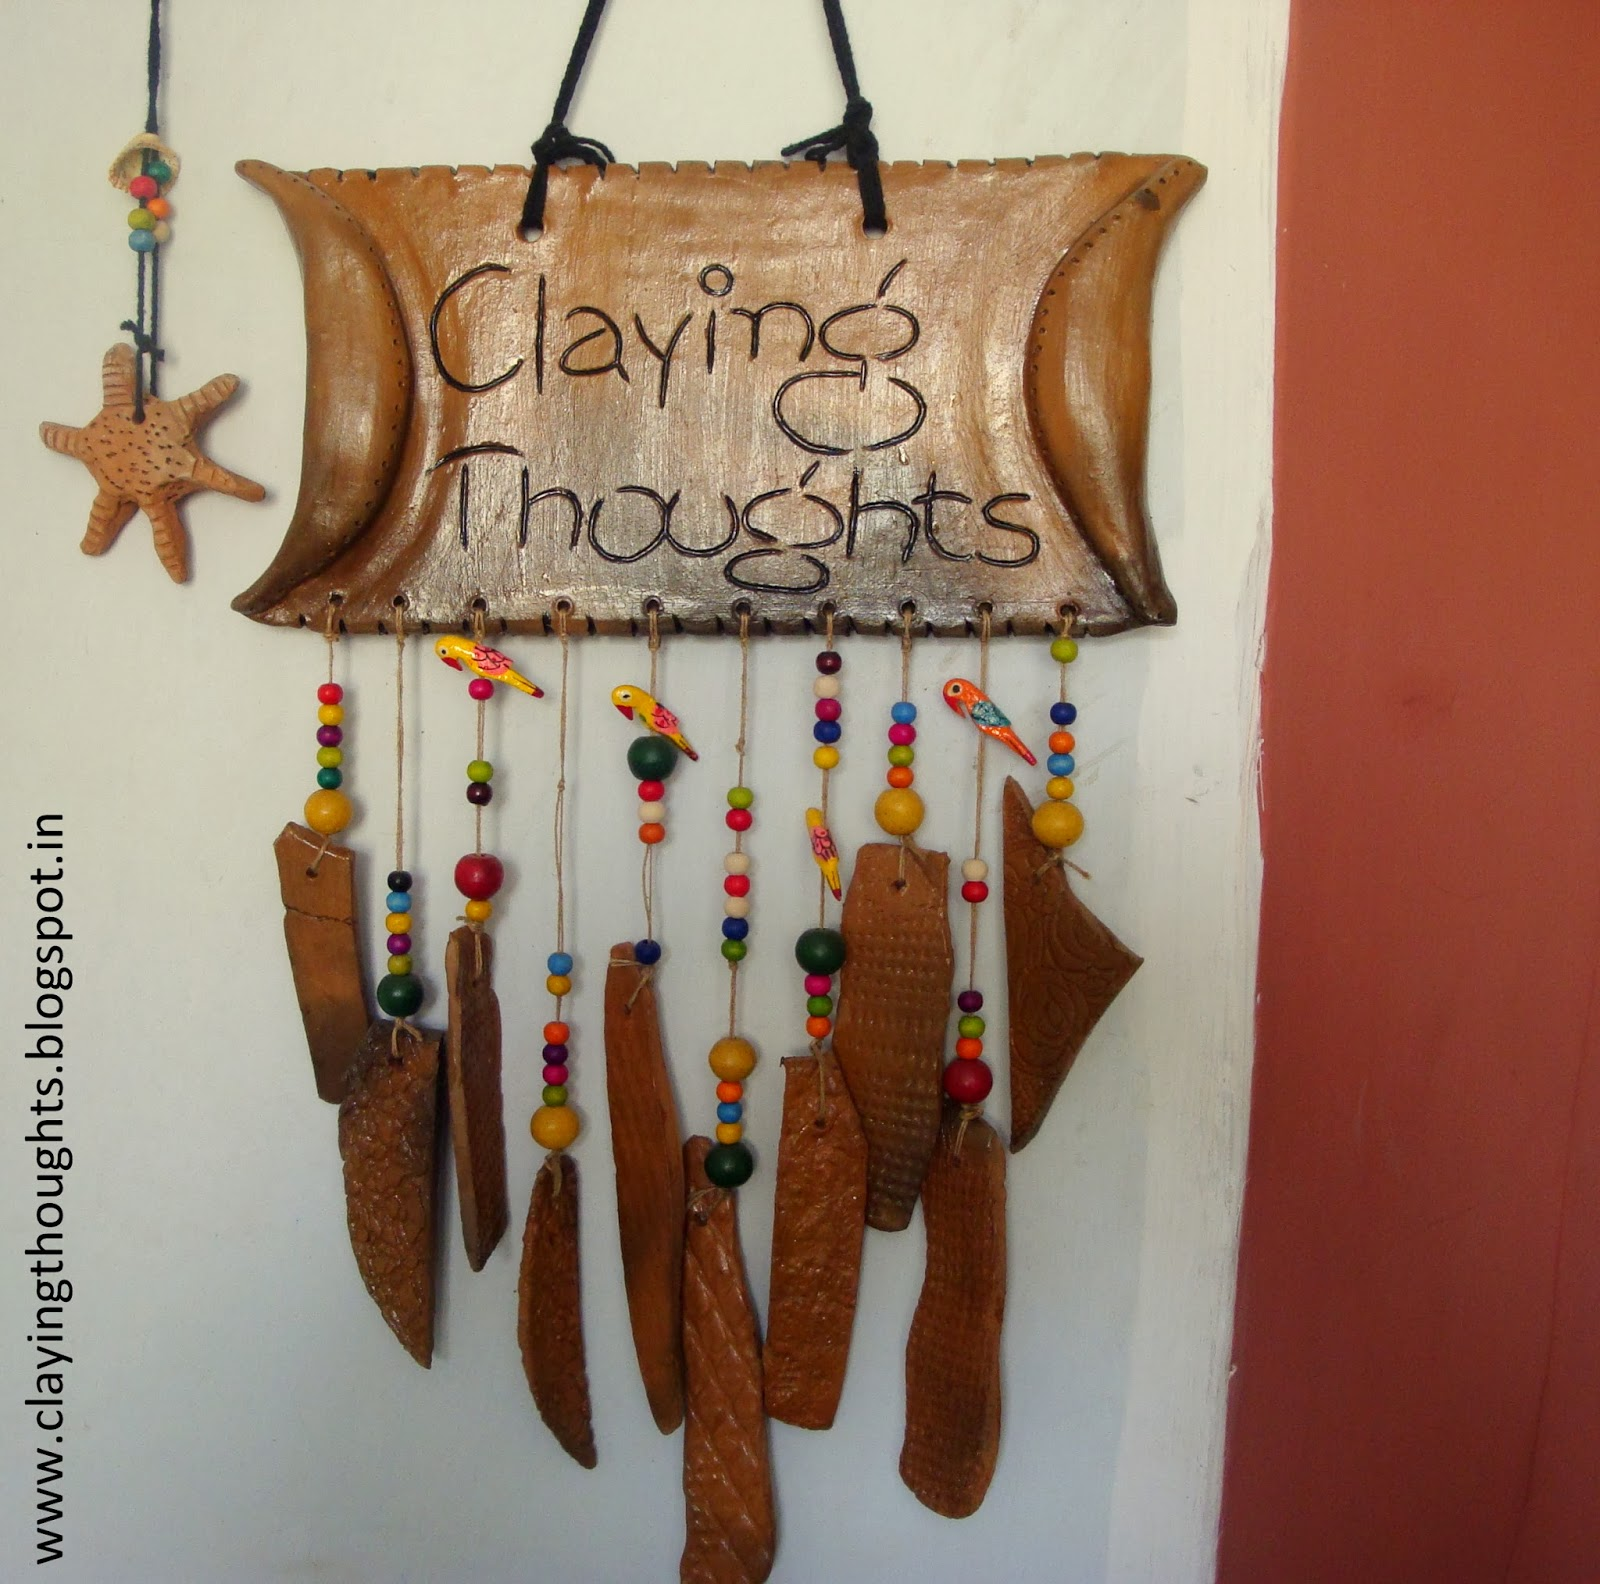 Claying Thoughts Terracotta Clay Name Plates